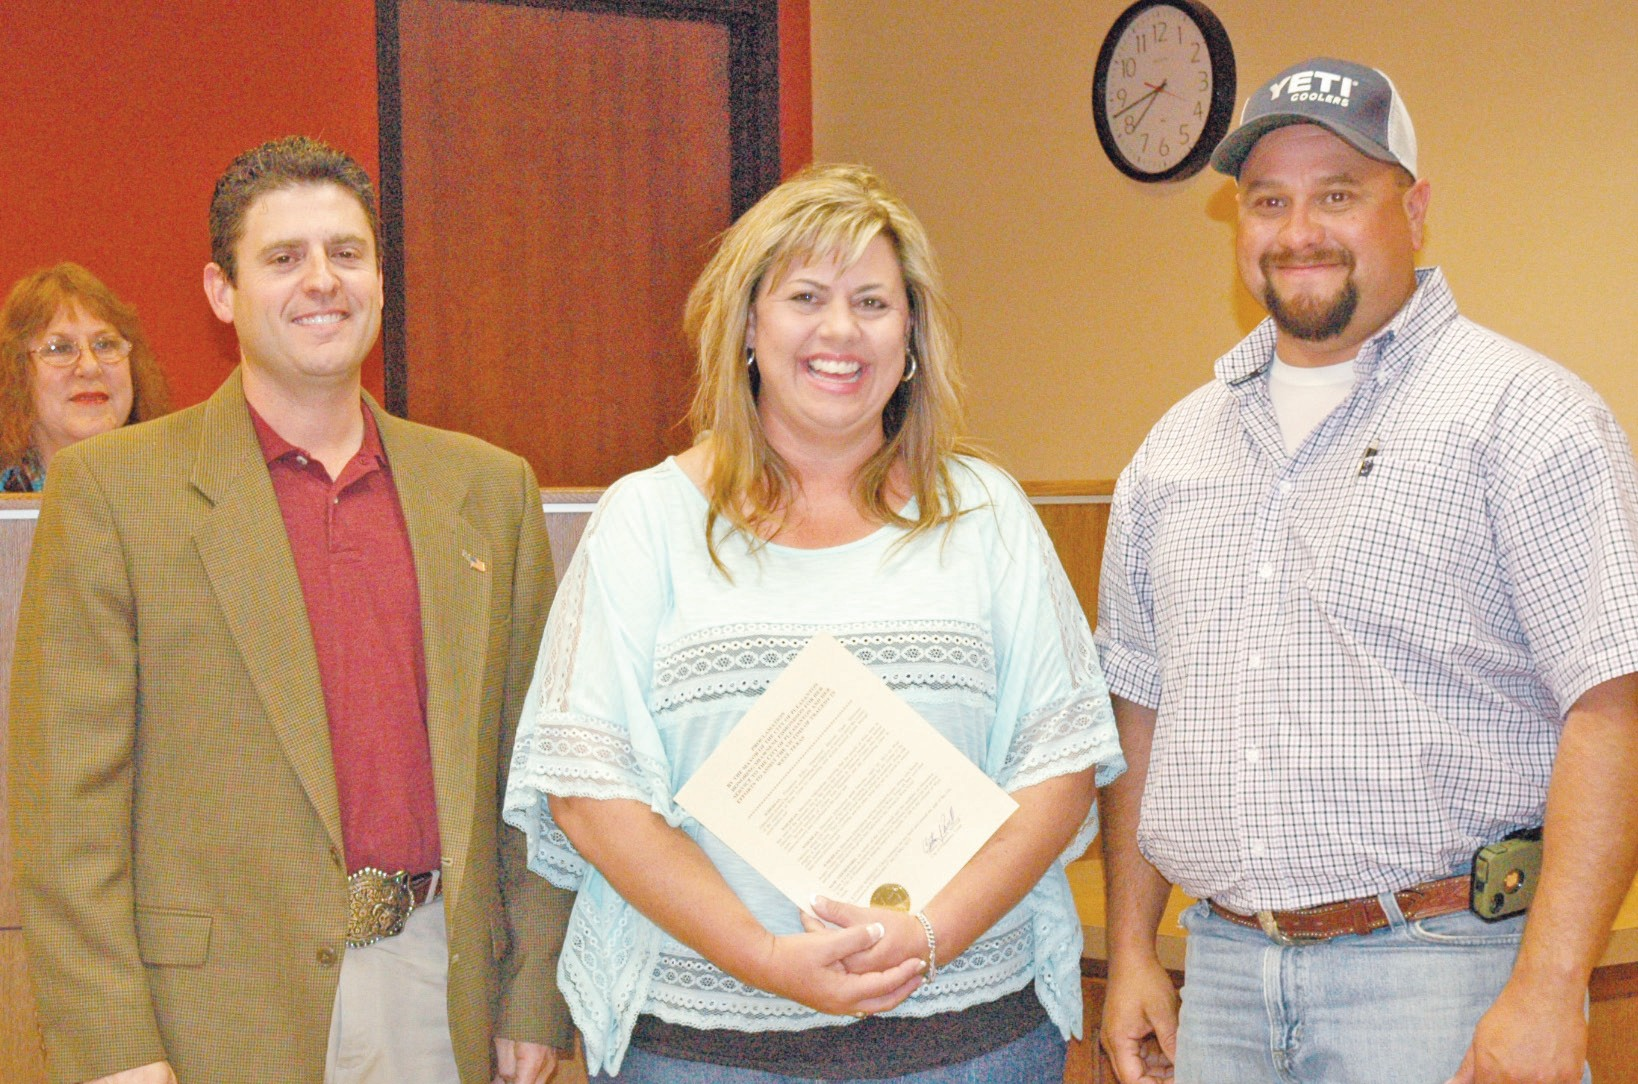 Shawnene Edmondson (center) was presented a special proclamation from City of Pleasanton Mayor Clint Powell (left) at the May 1 City Council Special Meeting. Edmondson was the driving force for collecting items to be transported to the town of West, Texas after the recent explosion. David Douglas (right) of Ranchscapes donated the use of his trailer, truck, fuel and time to deliver to the citizens in need.